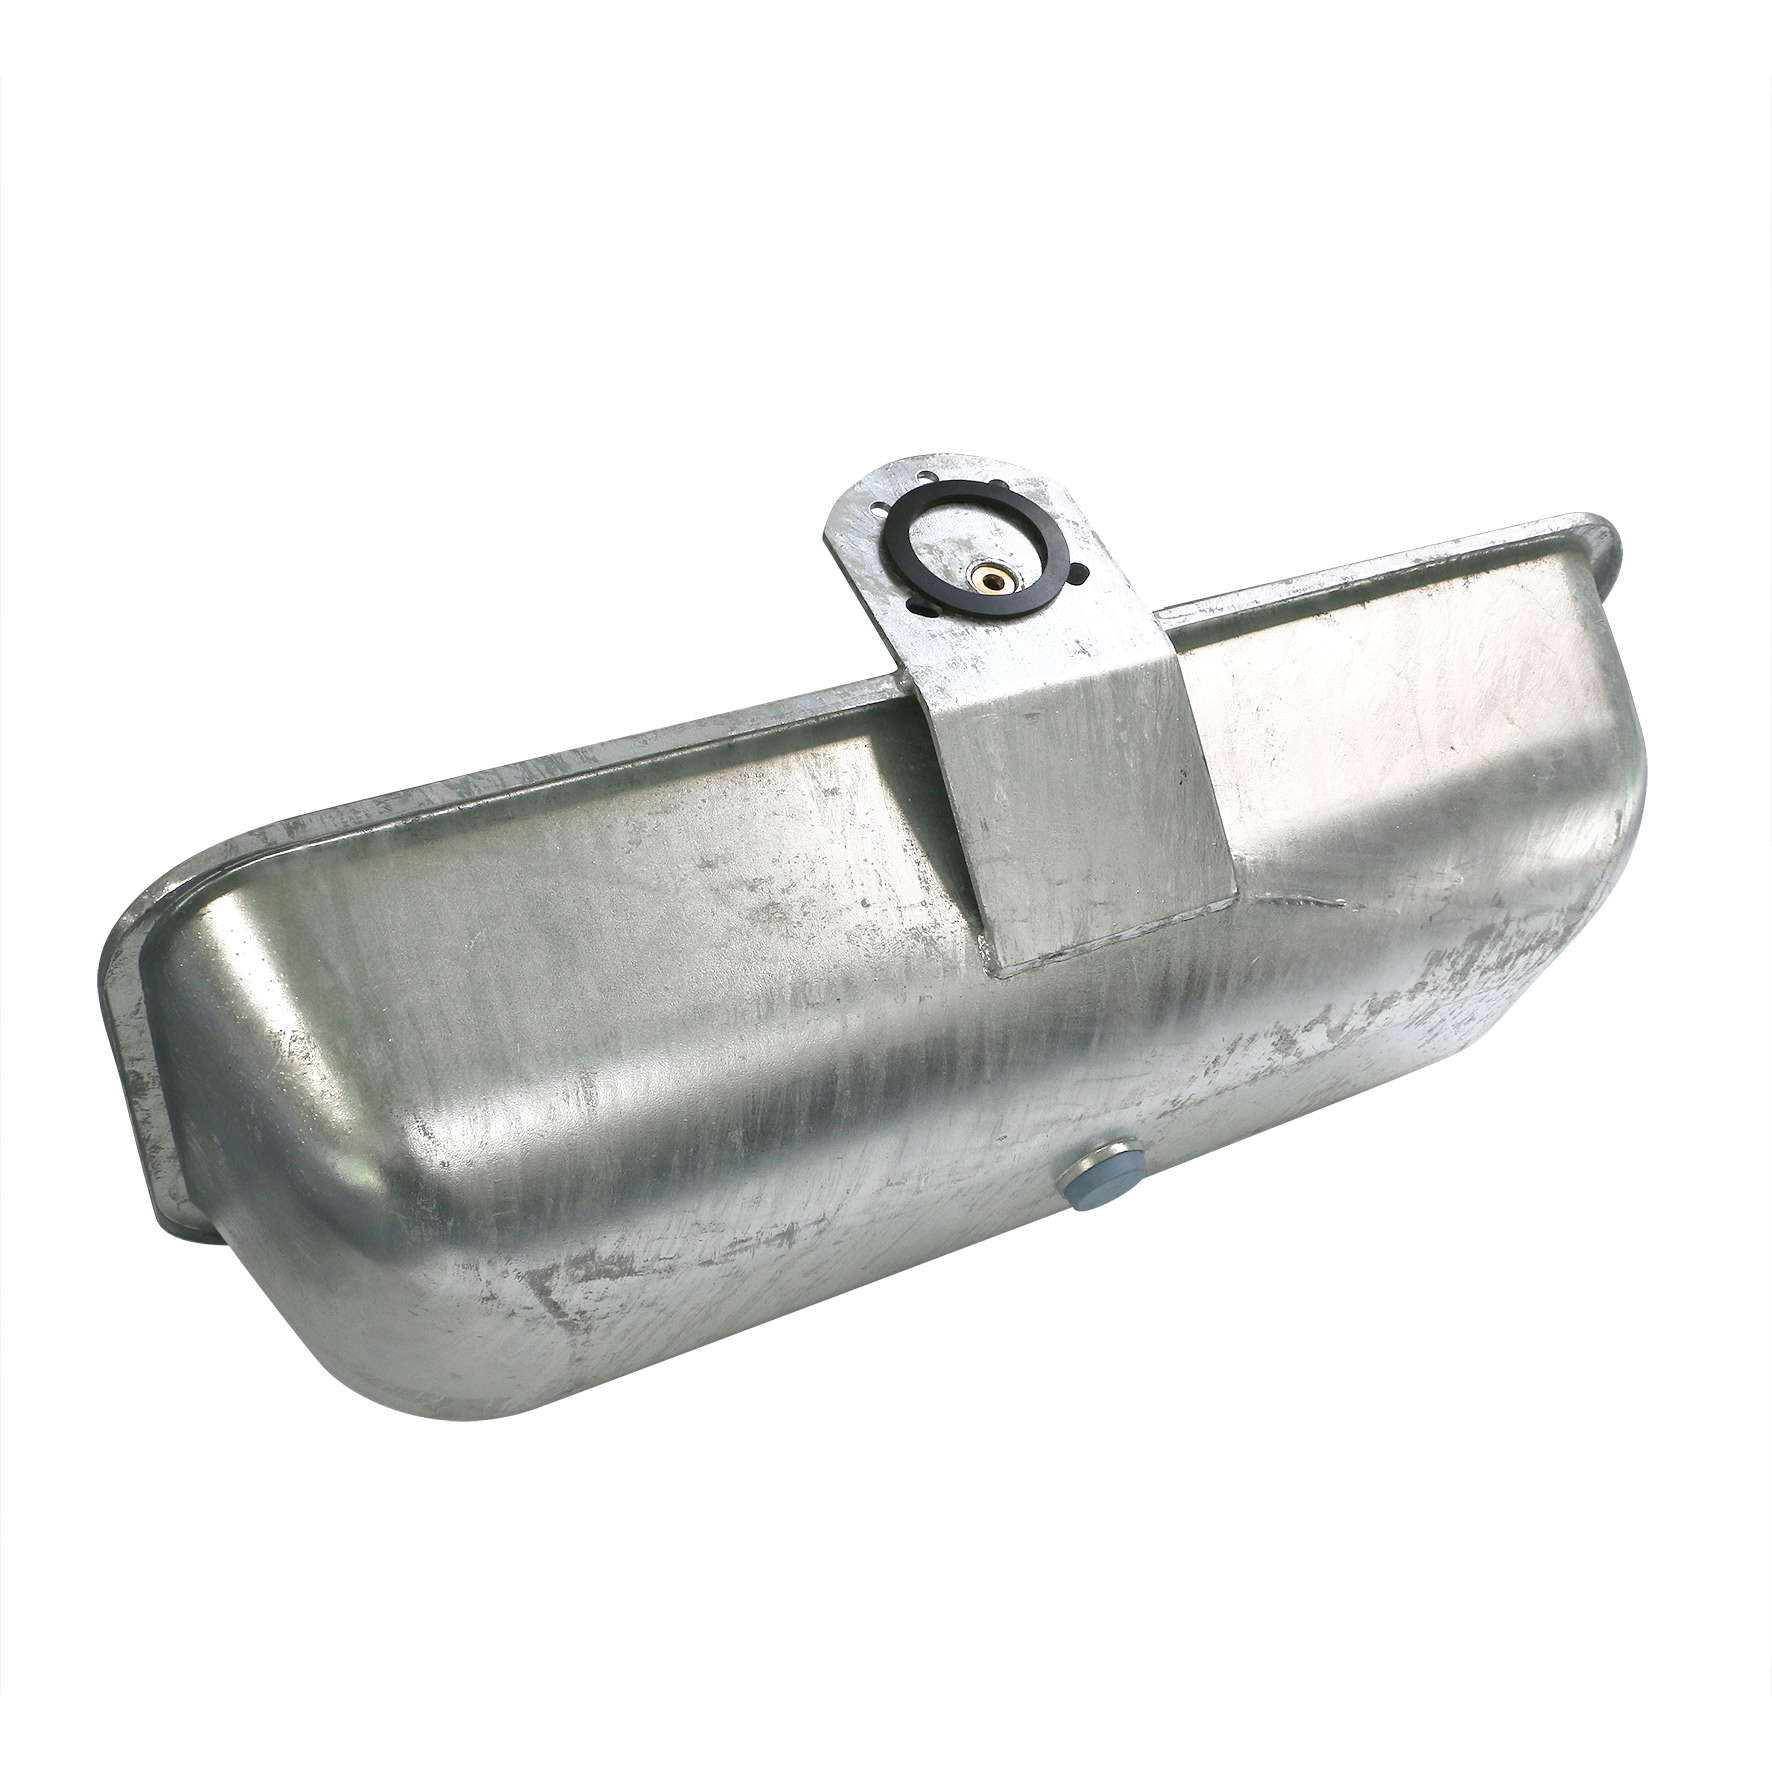 GALVALAC 65T Drinking Trough for Tank